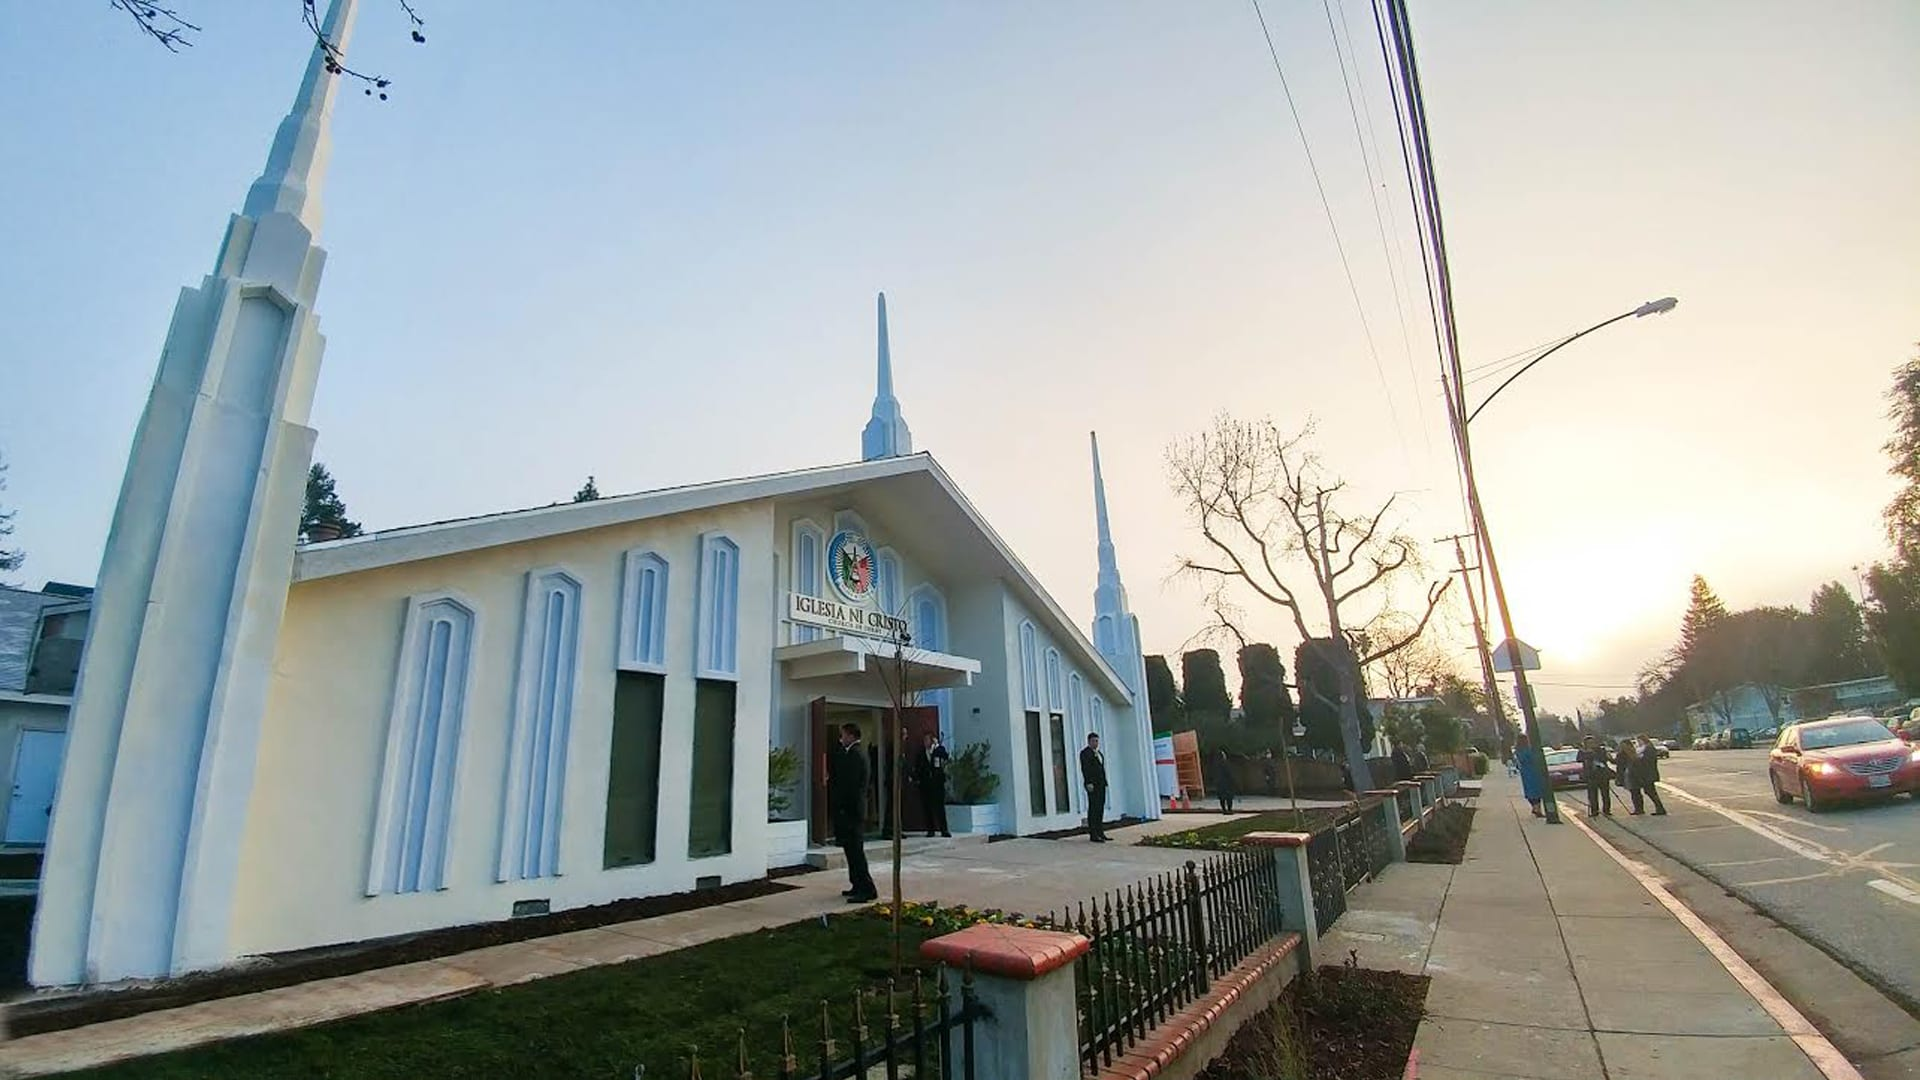 Church Of Christ house of worship in Mountain View, California